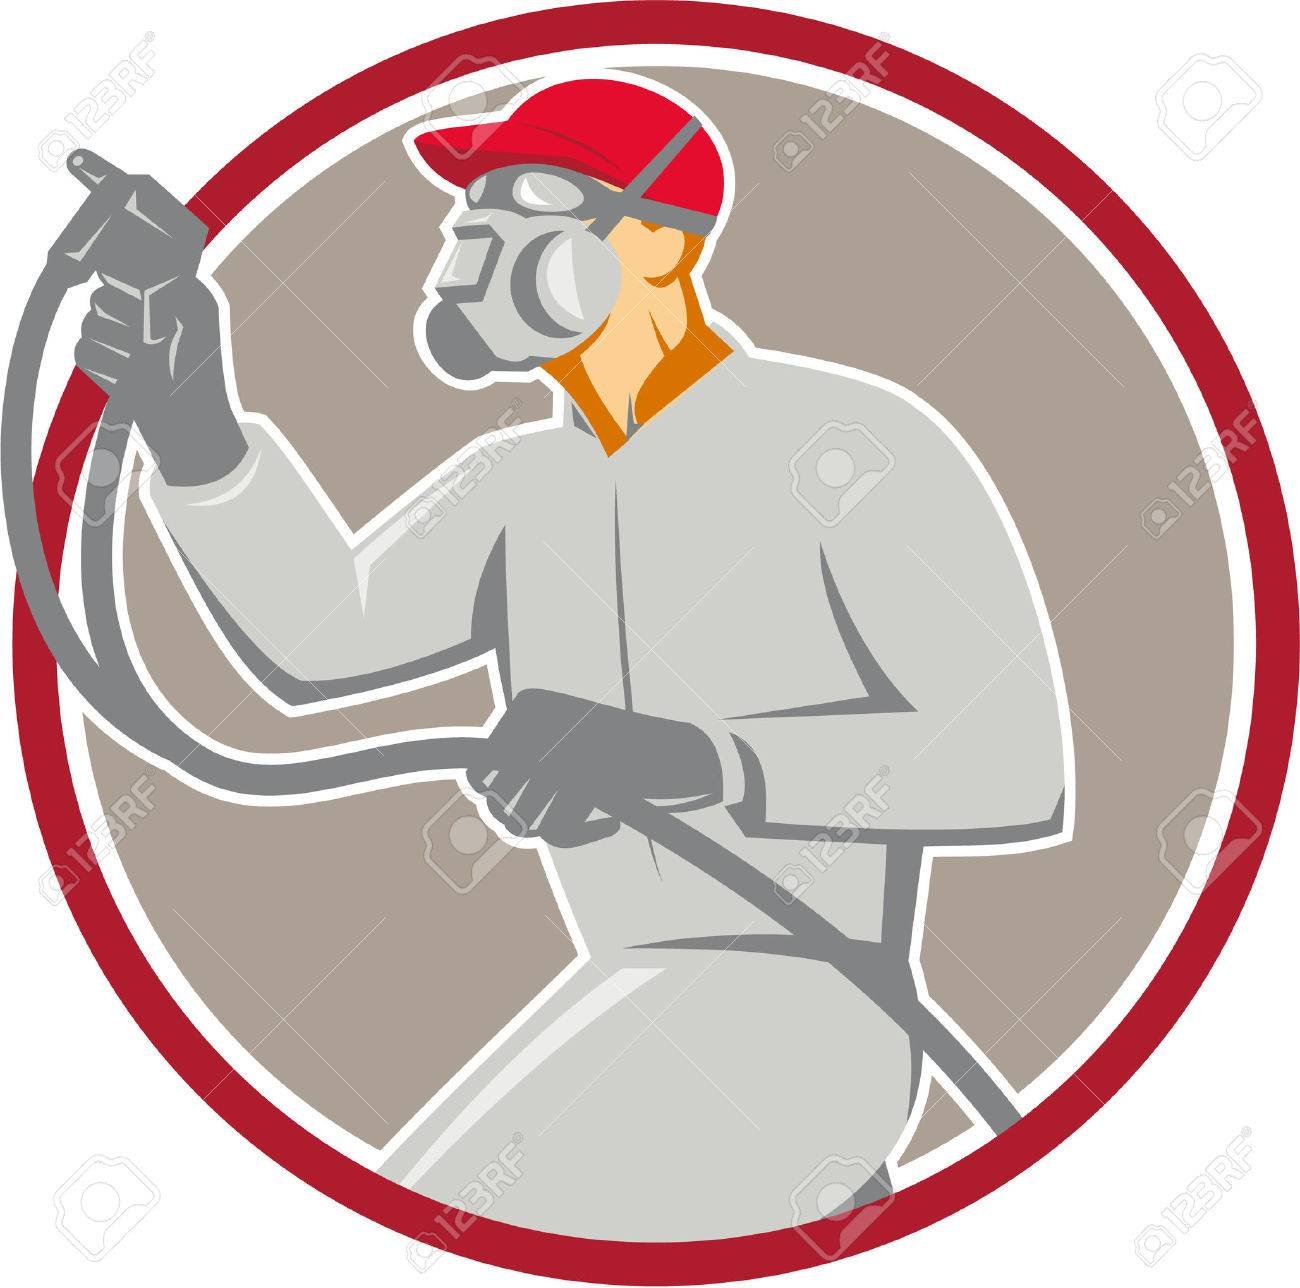 Illustration of car painter wearing mask holding paint spray gun spraying viewed from the side set inside circle done in retro style. - 42118168